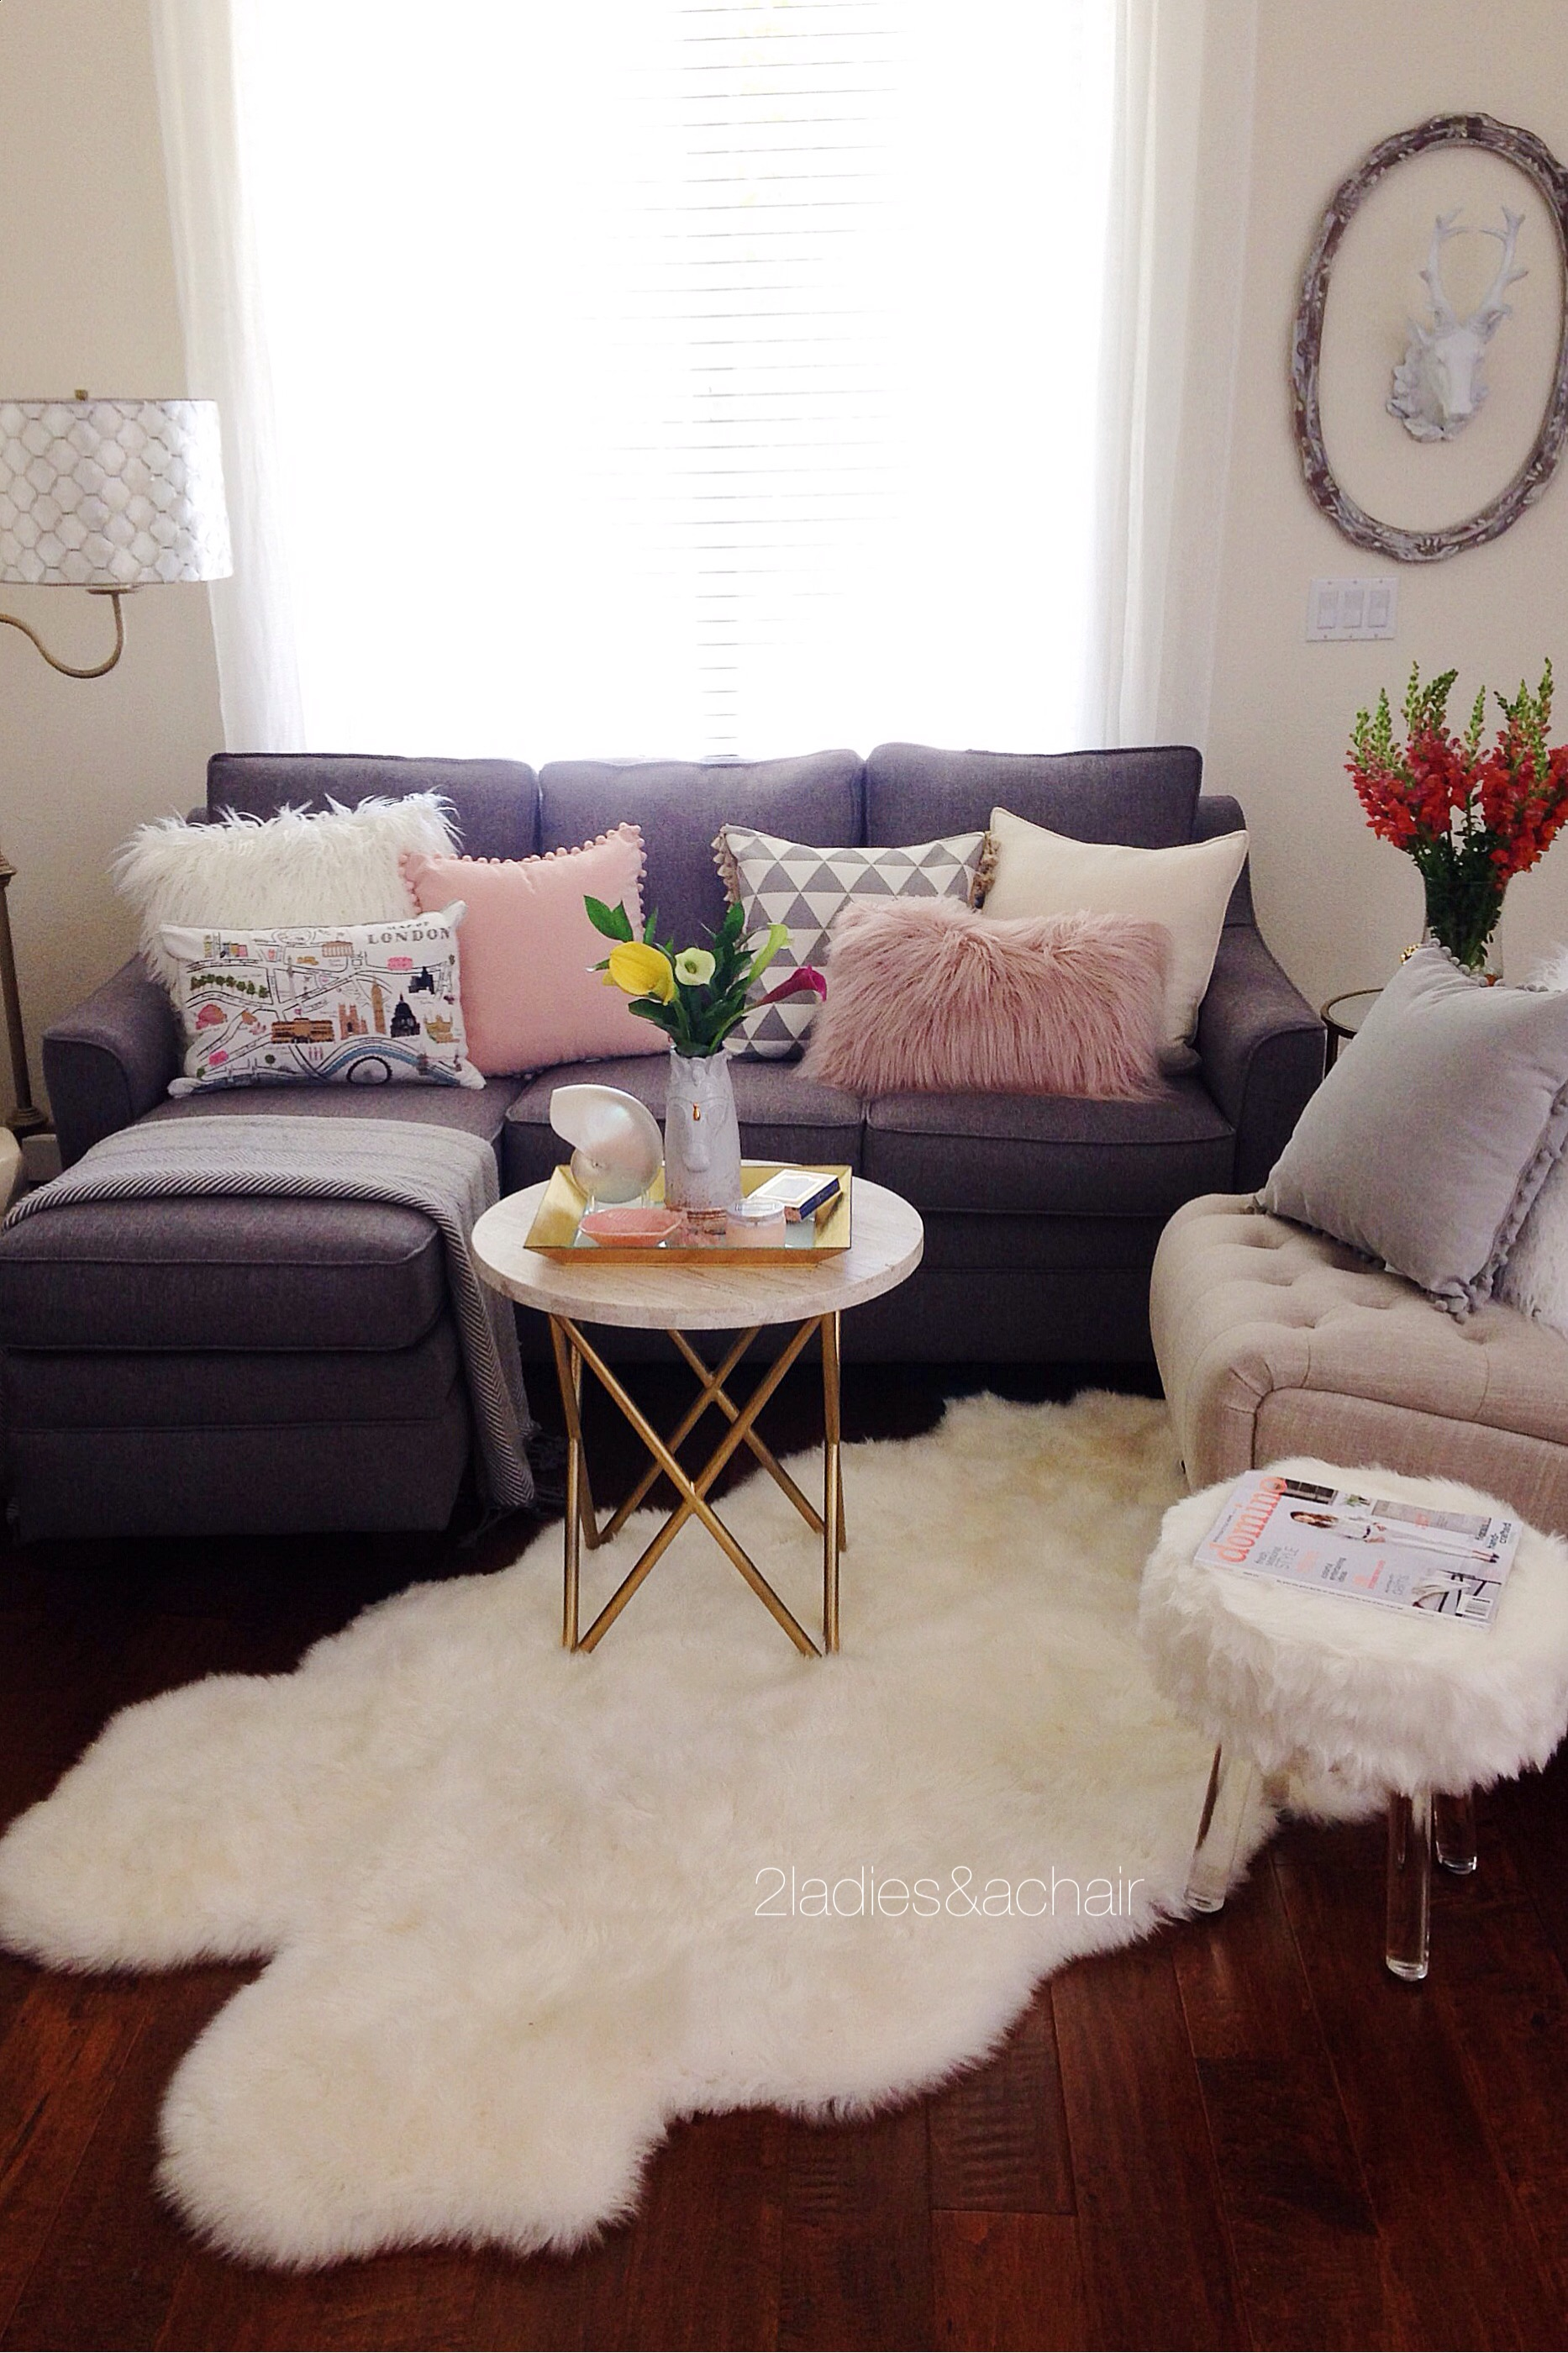 Why Are Throw Pillows So Expensive : Obsession with Throw Pillows ? 2 Ladies & A Chair